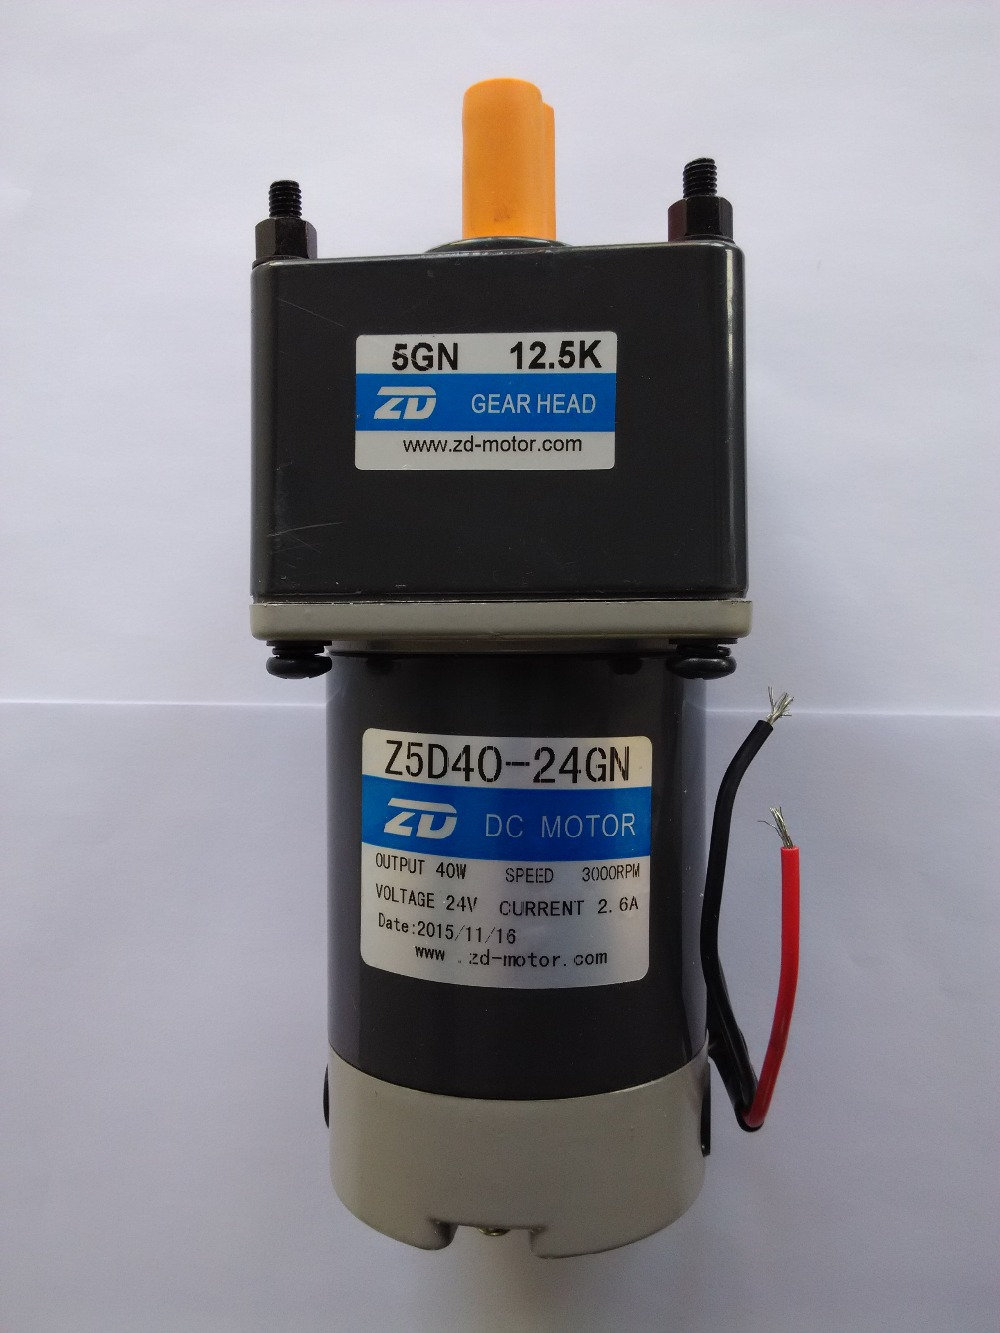 motor-reducer Z5D40-12GN,the torque is 2.48 N.m will be at 25: 1 and 112 rpm at the output. Output shaft diameter in 12 mm mick johnson motivation is at